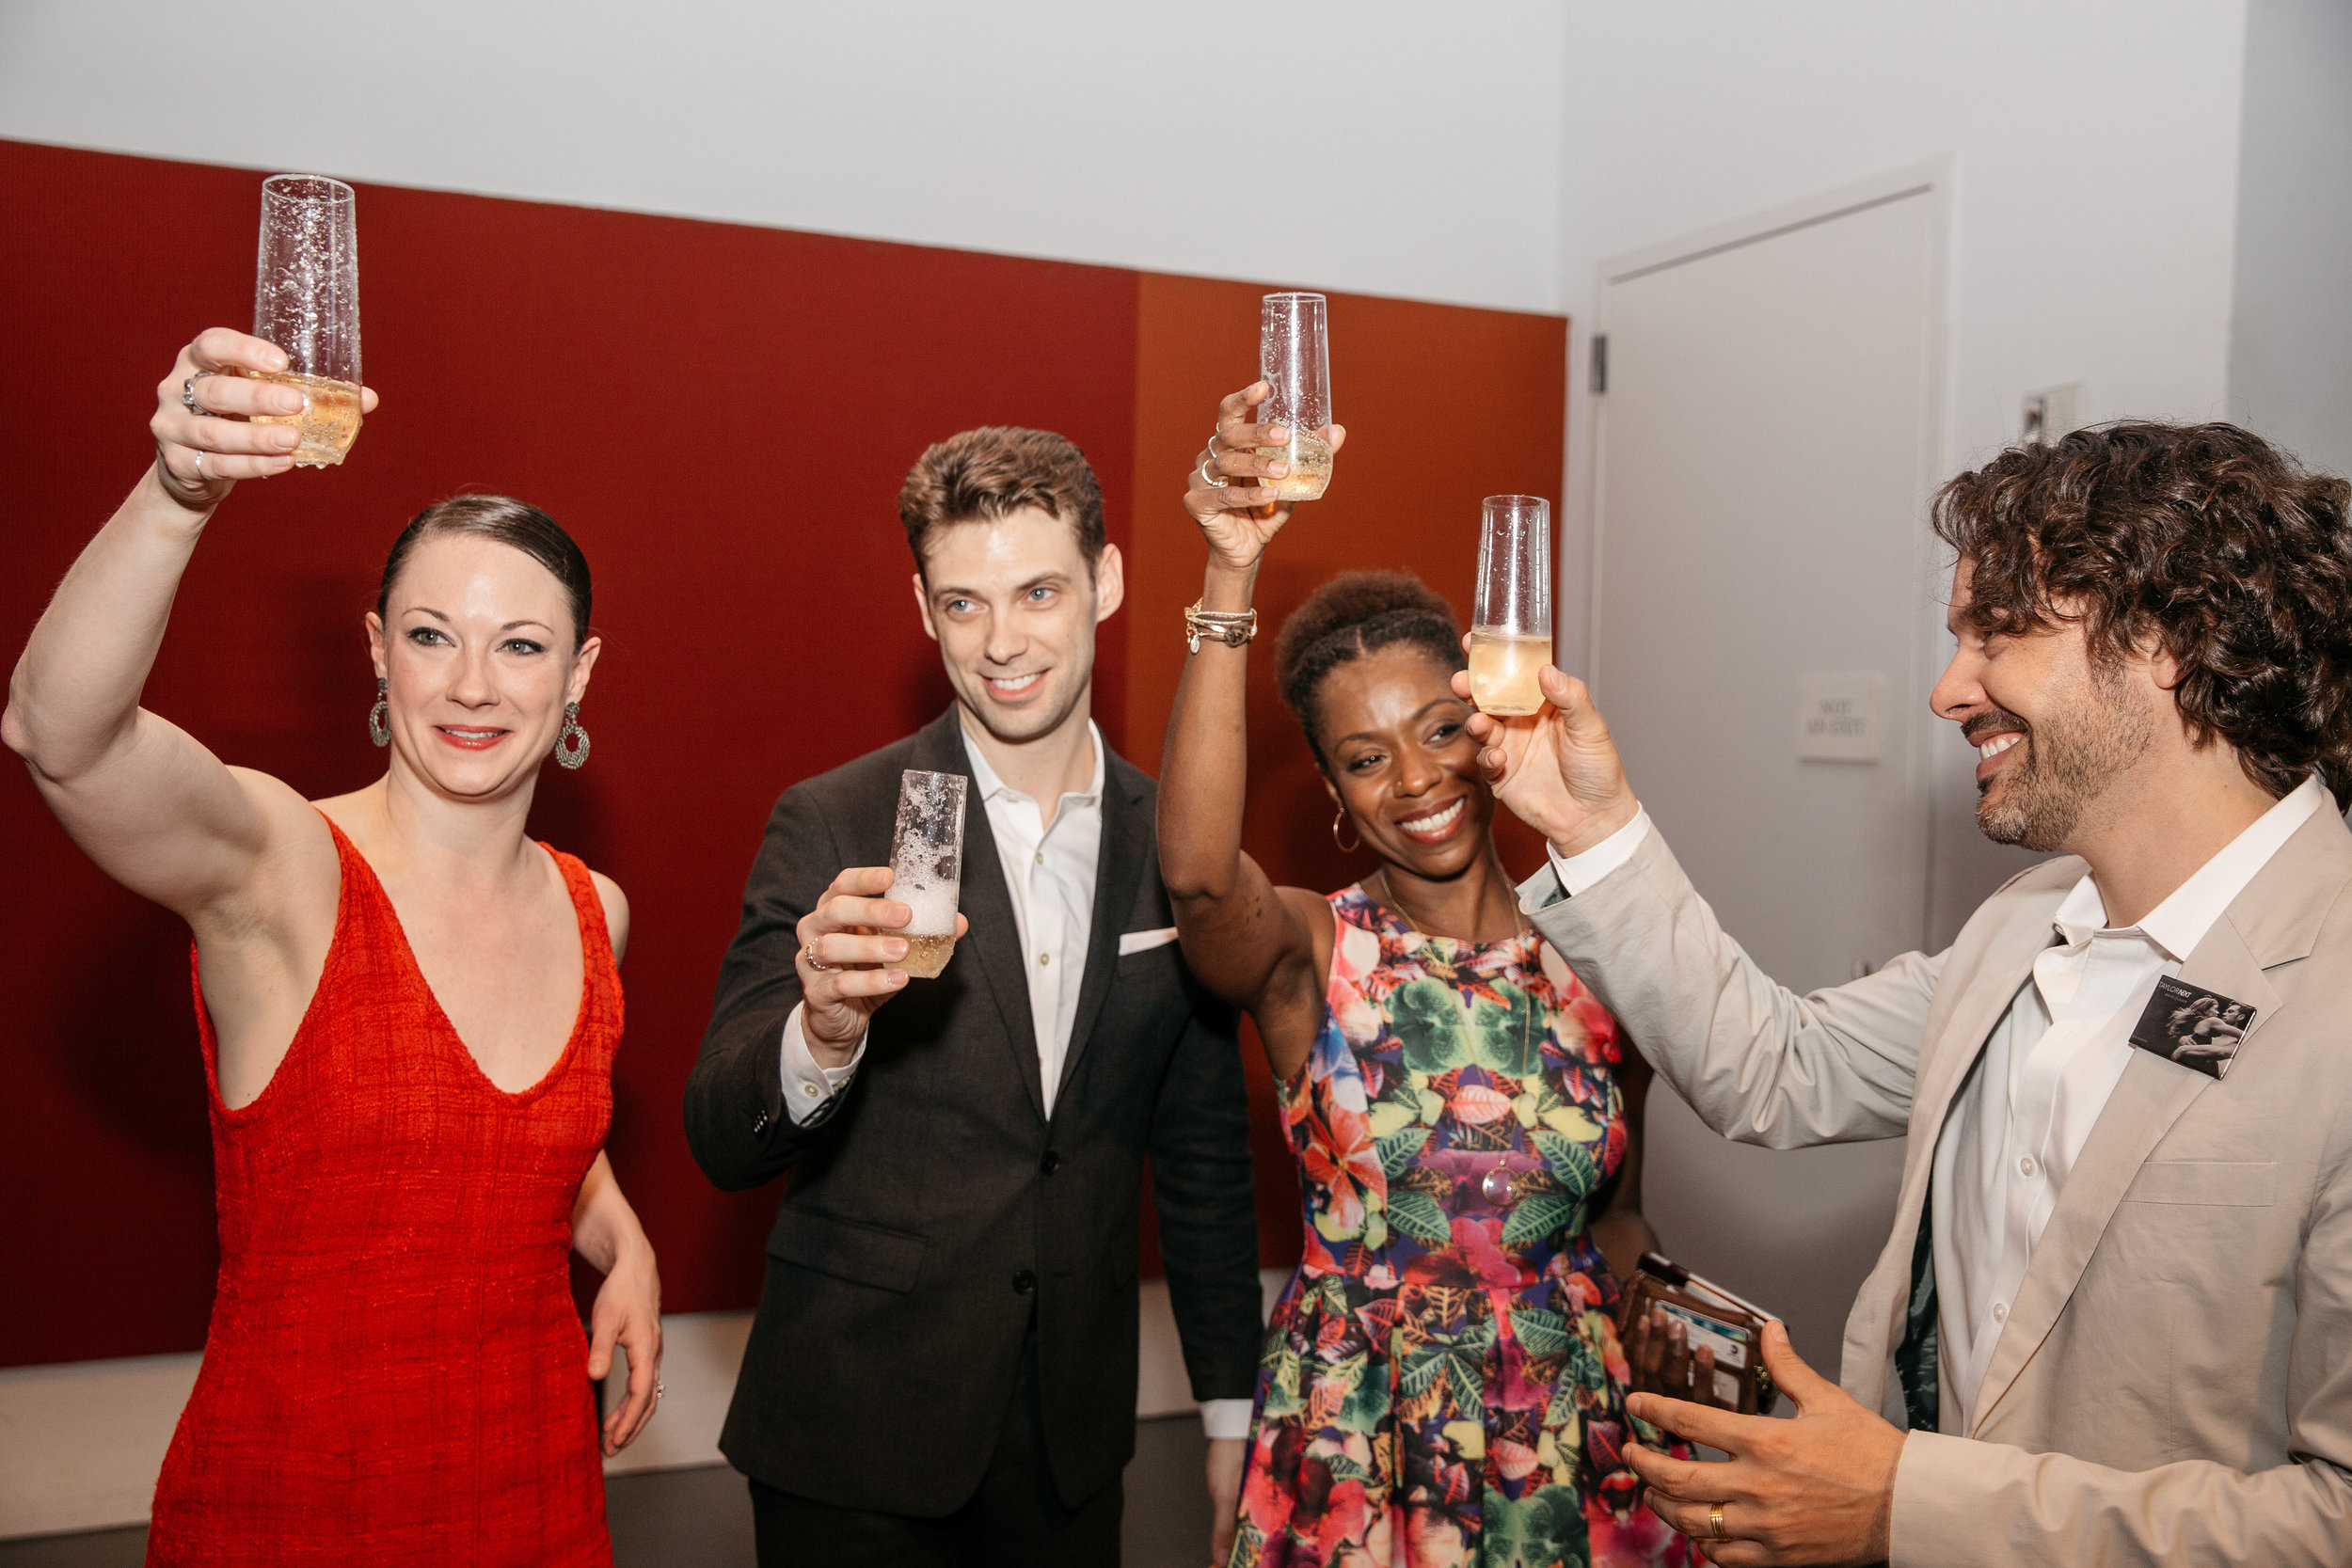 Bach Festival Closing Party - June 23, 2019TaylorNEXT hosted this intimate celebration after the Company's final performance in the Orchestra of St. Luke's three-week festival. Our young  members joined long-time patrons for refreshments and live music. View photo gallery